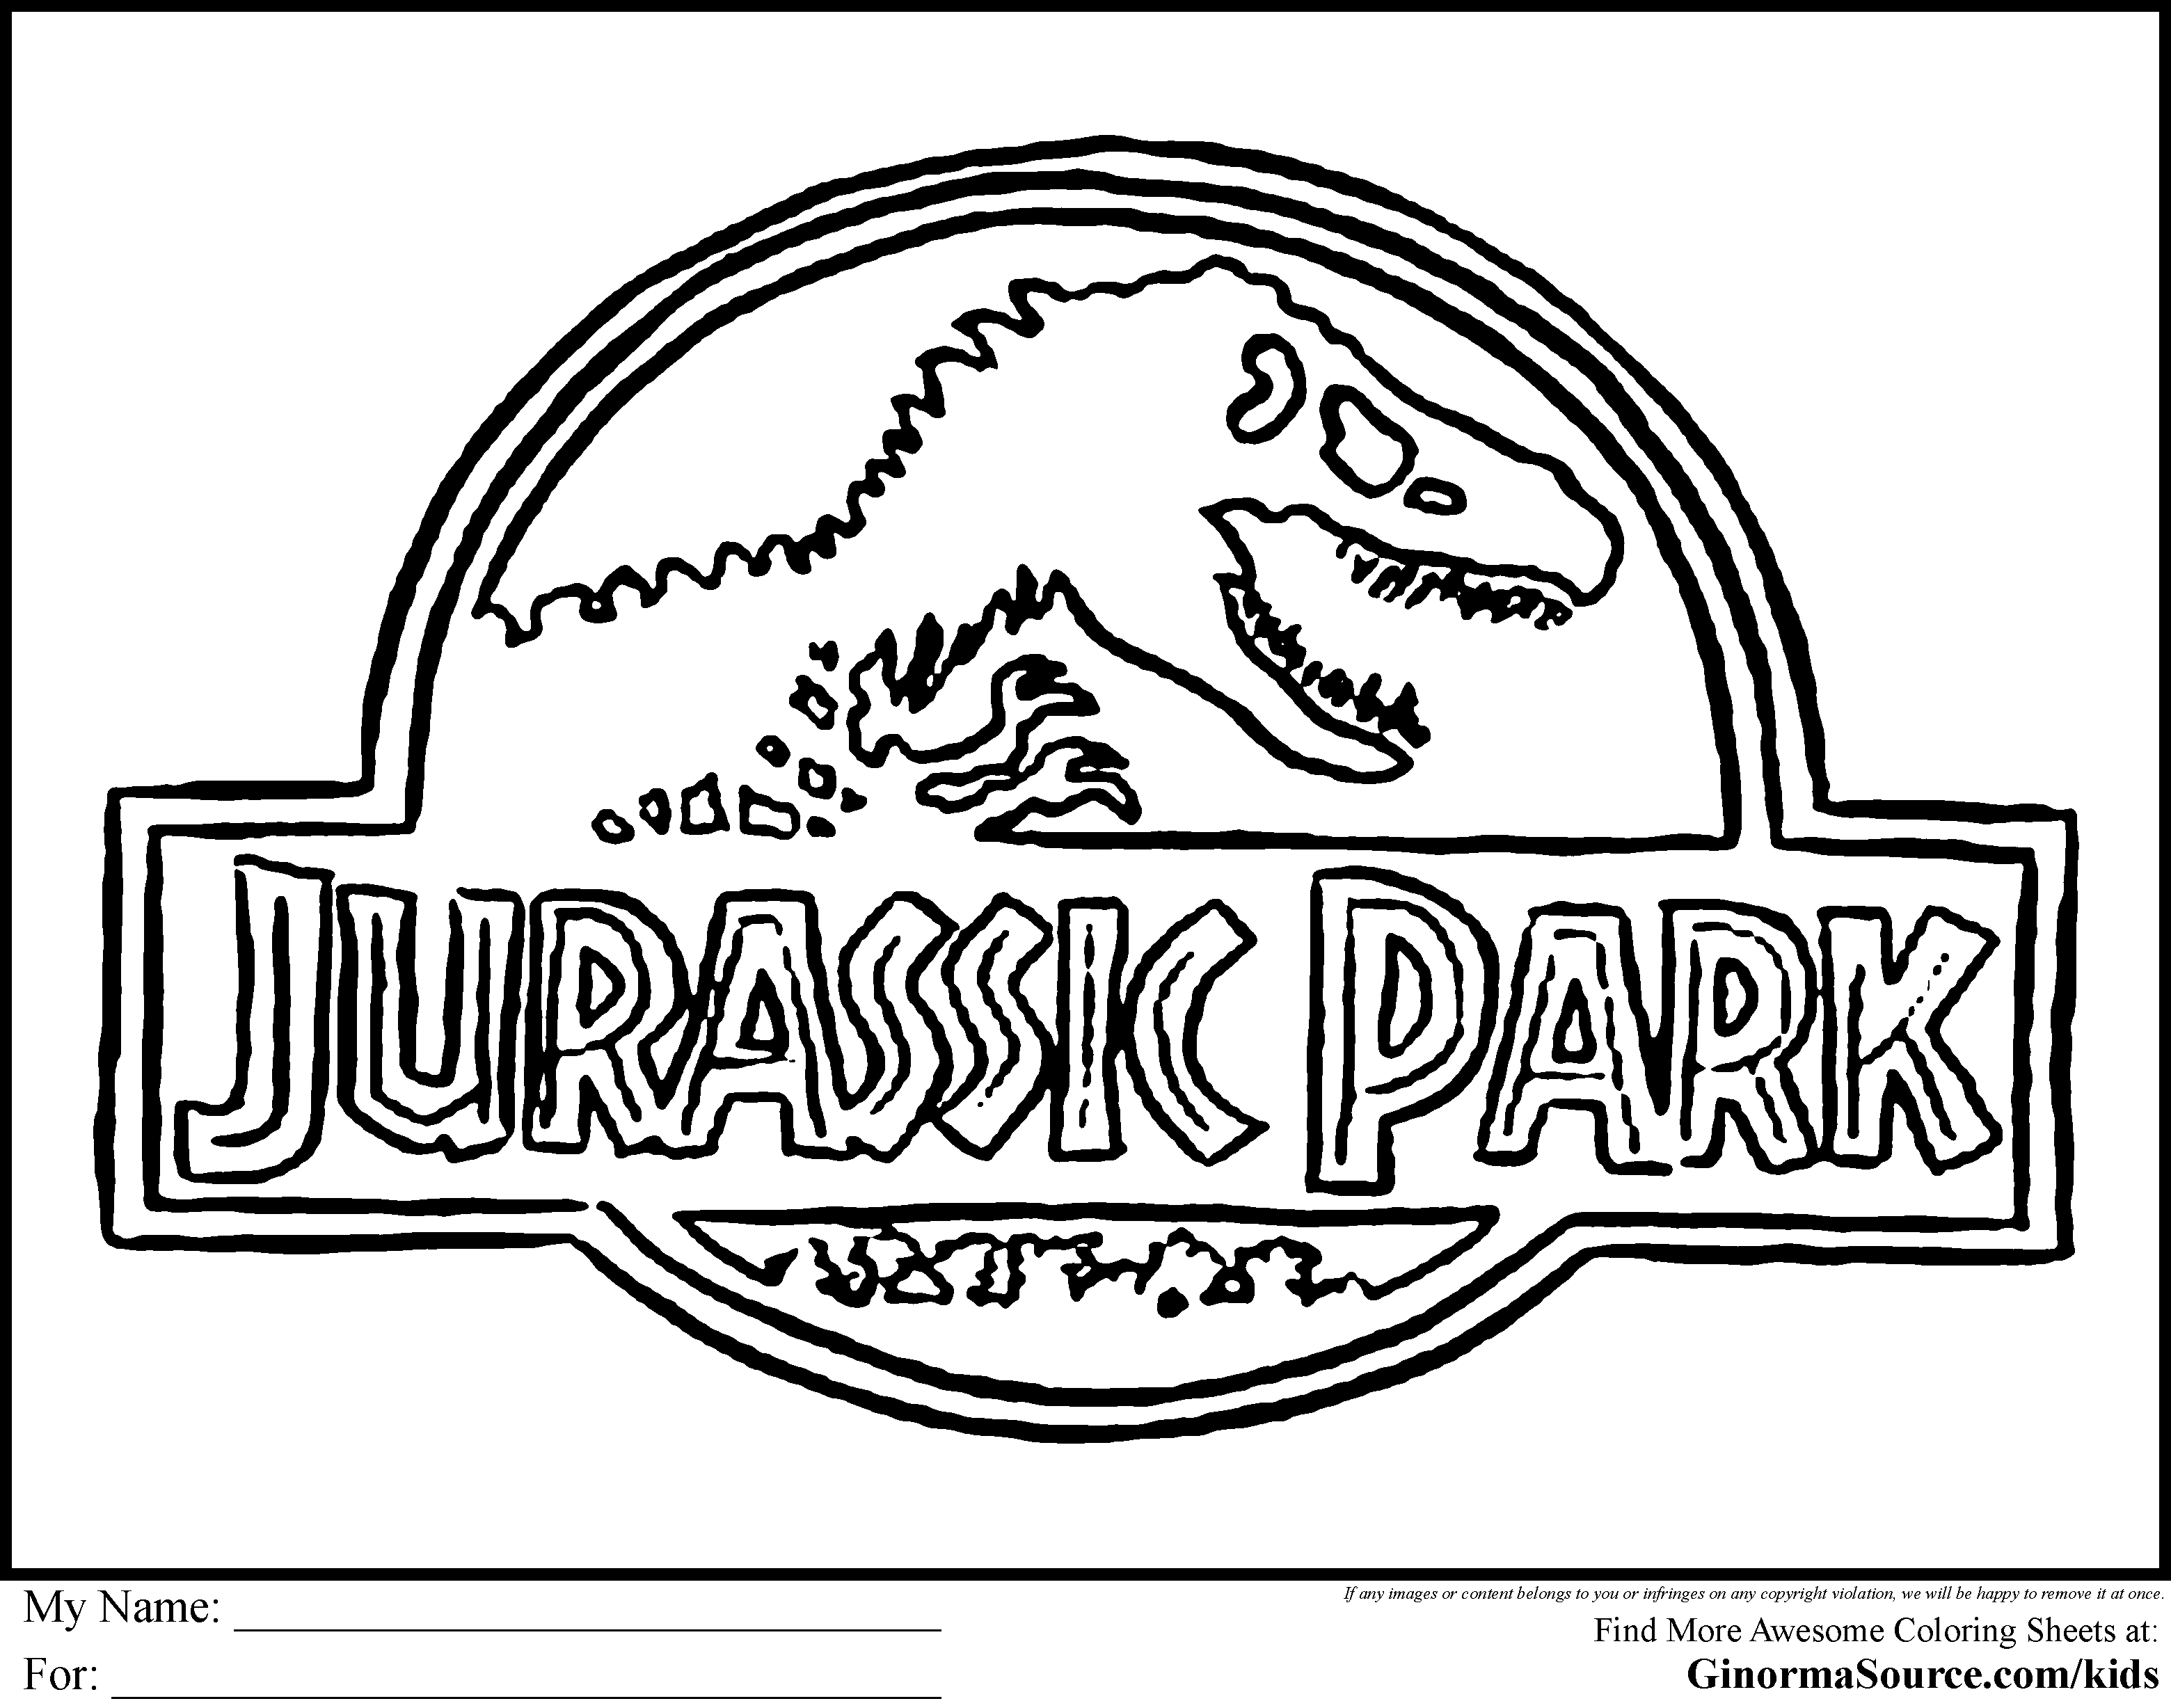 jurassic park coloring pages google search jagger s 6th